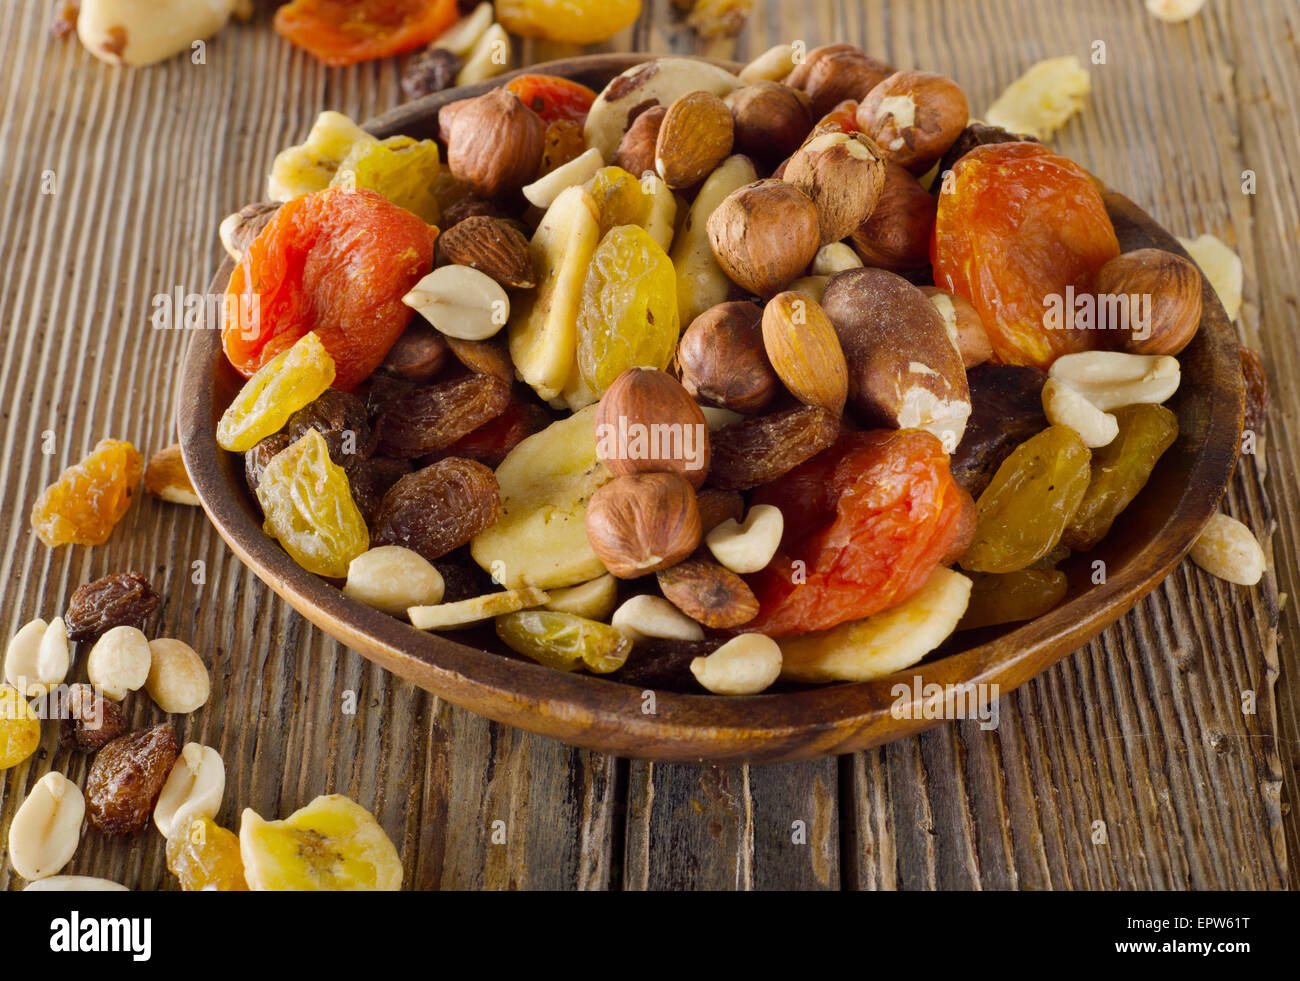 Nuts and dried  fruits on a wooden background. - Stock Image